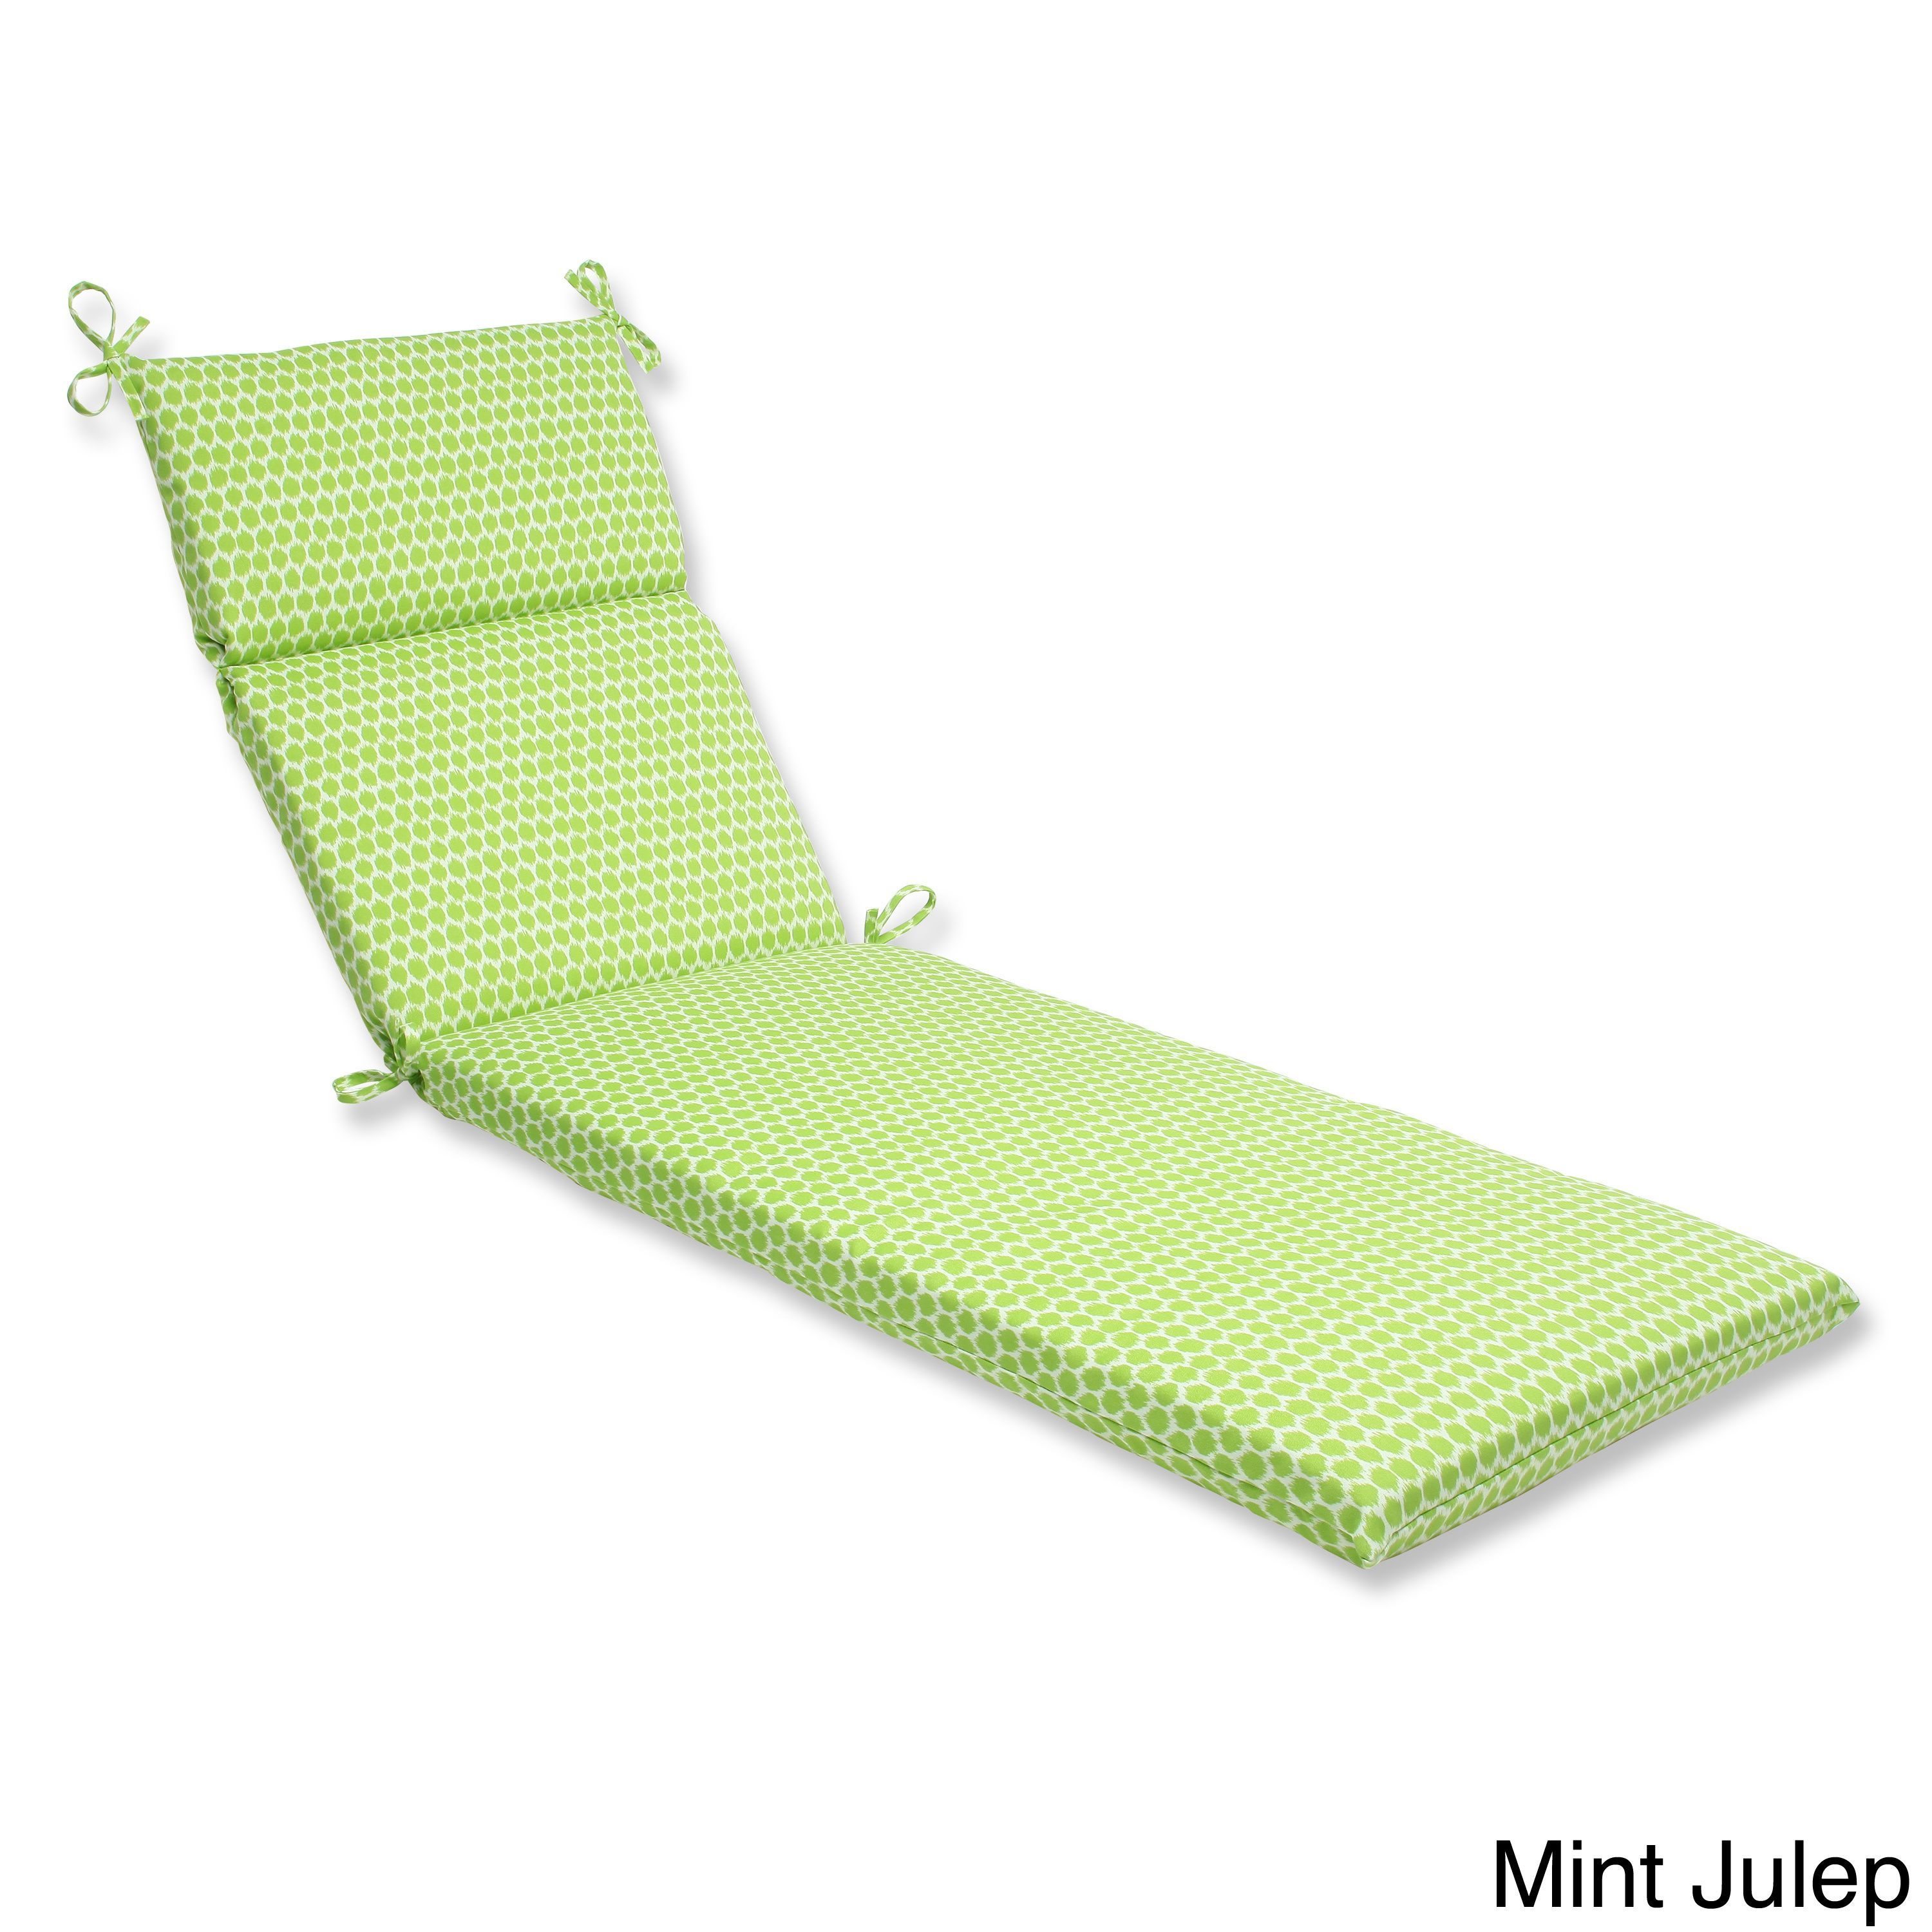 Pillow Perfect Seeing Spots Chaise Lounge Outdoor Cushion (Mint Julep),  Green (Fabric